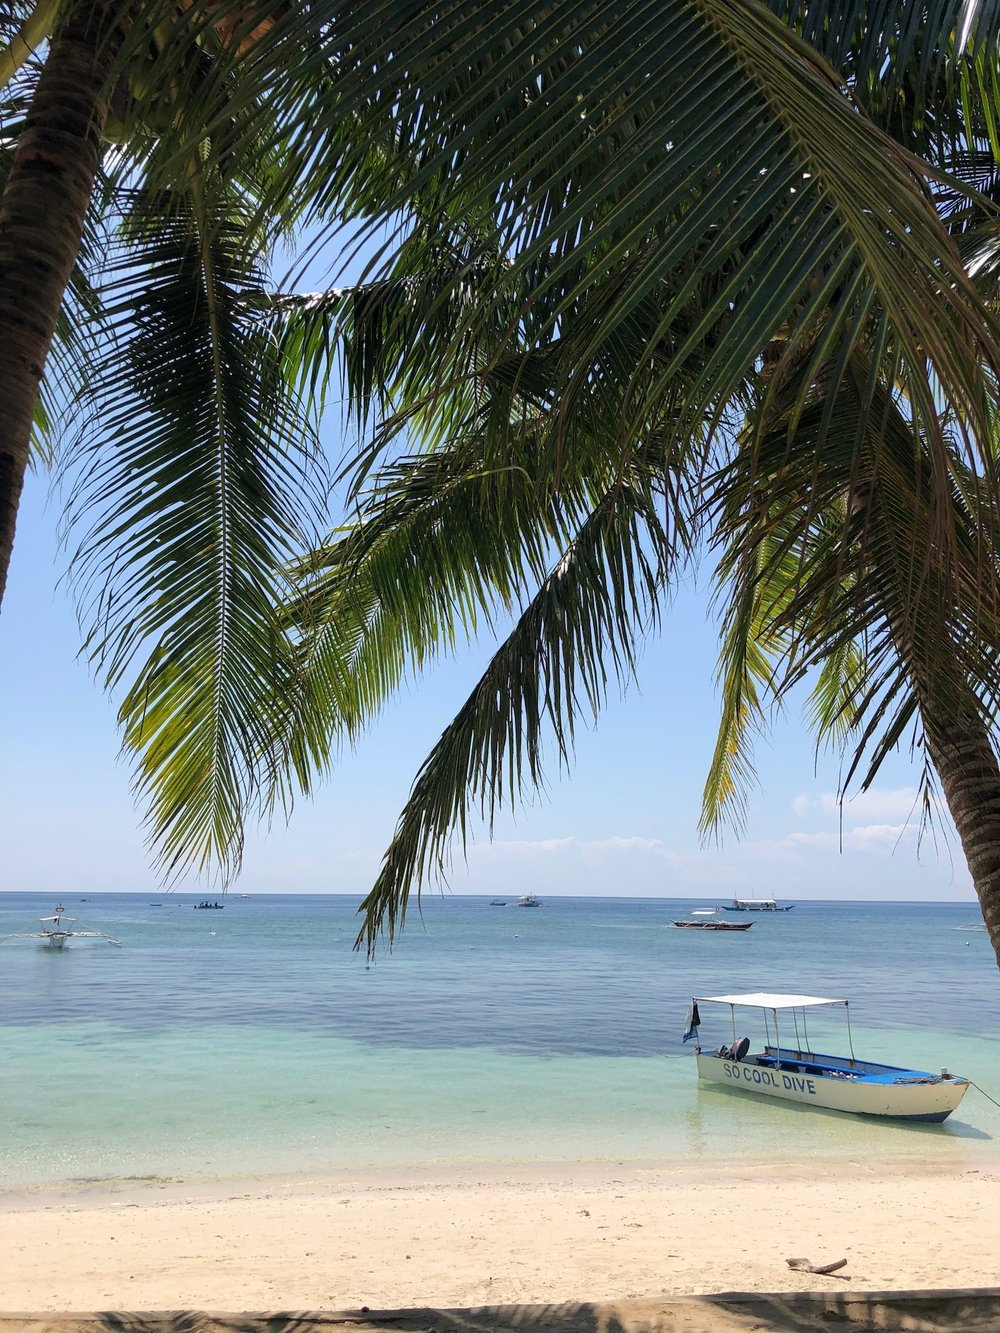 The beautiful Alona Beach on the island of Bohol, Philippines.